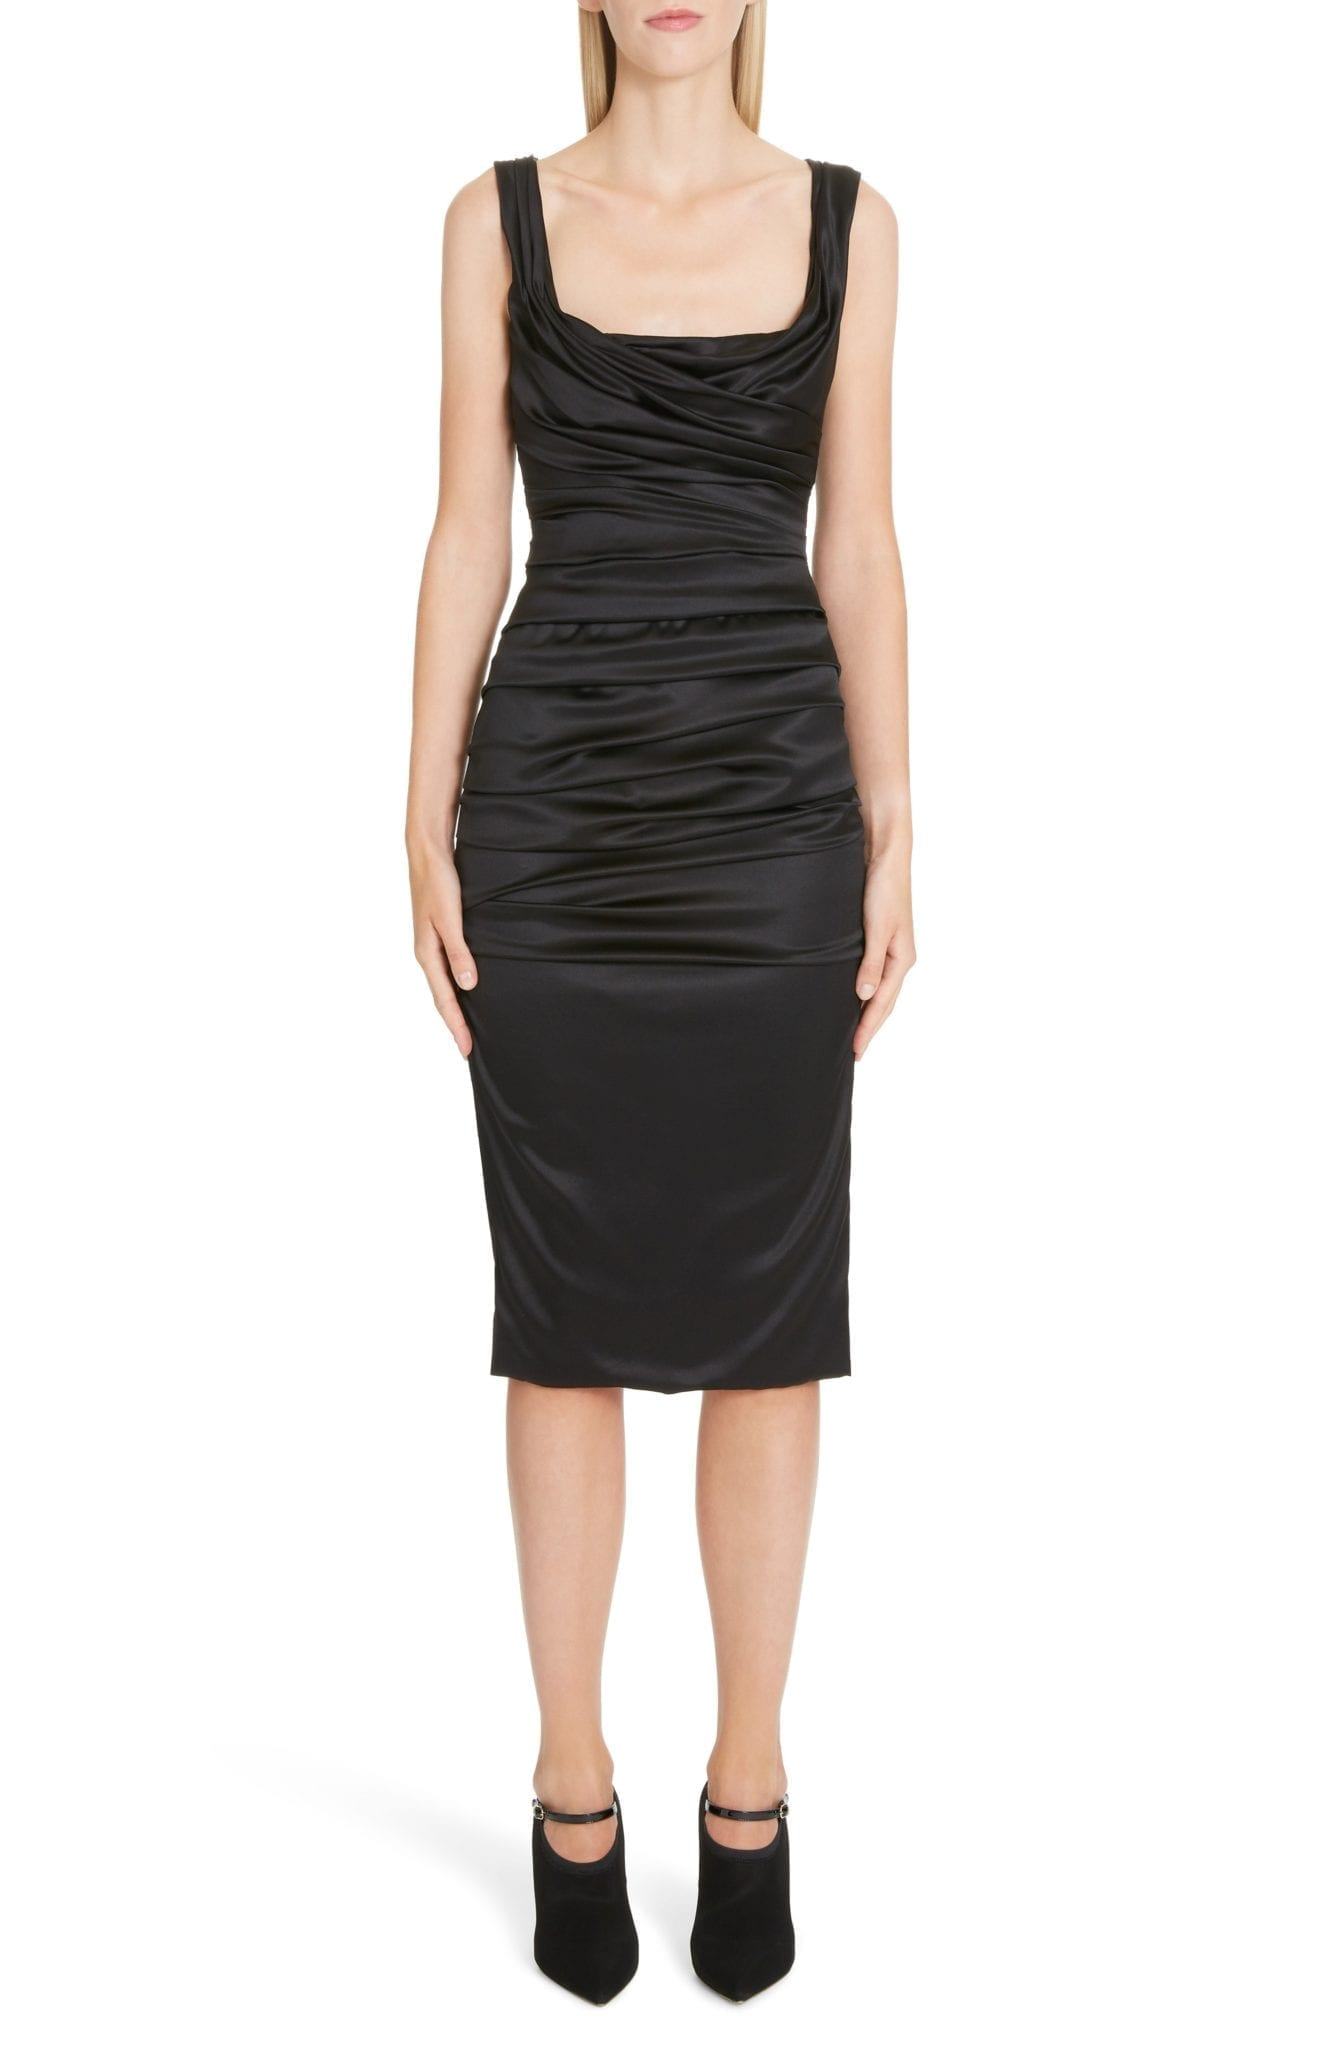 DOLCE&GABBANA Ruched Stretch Silk Satin Body-Con Black Dress